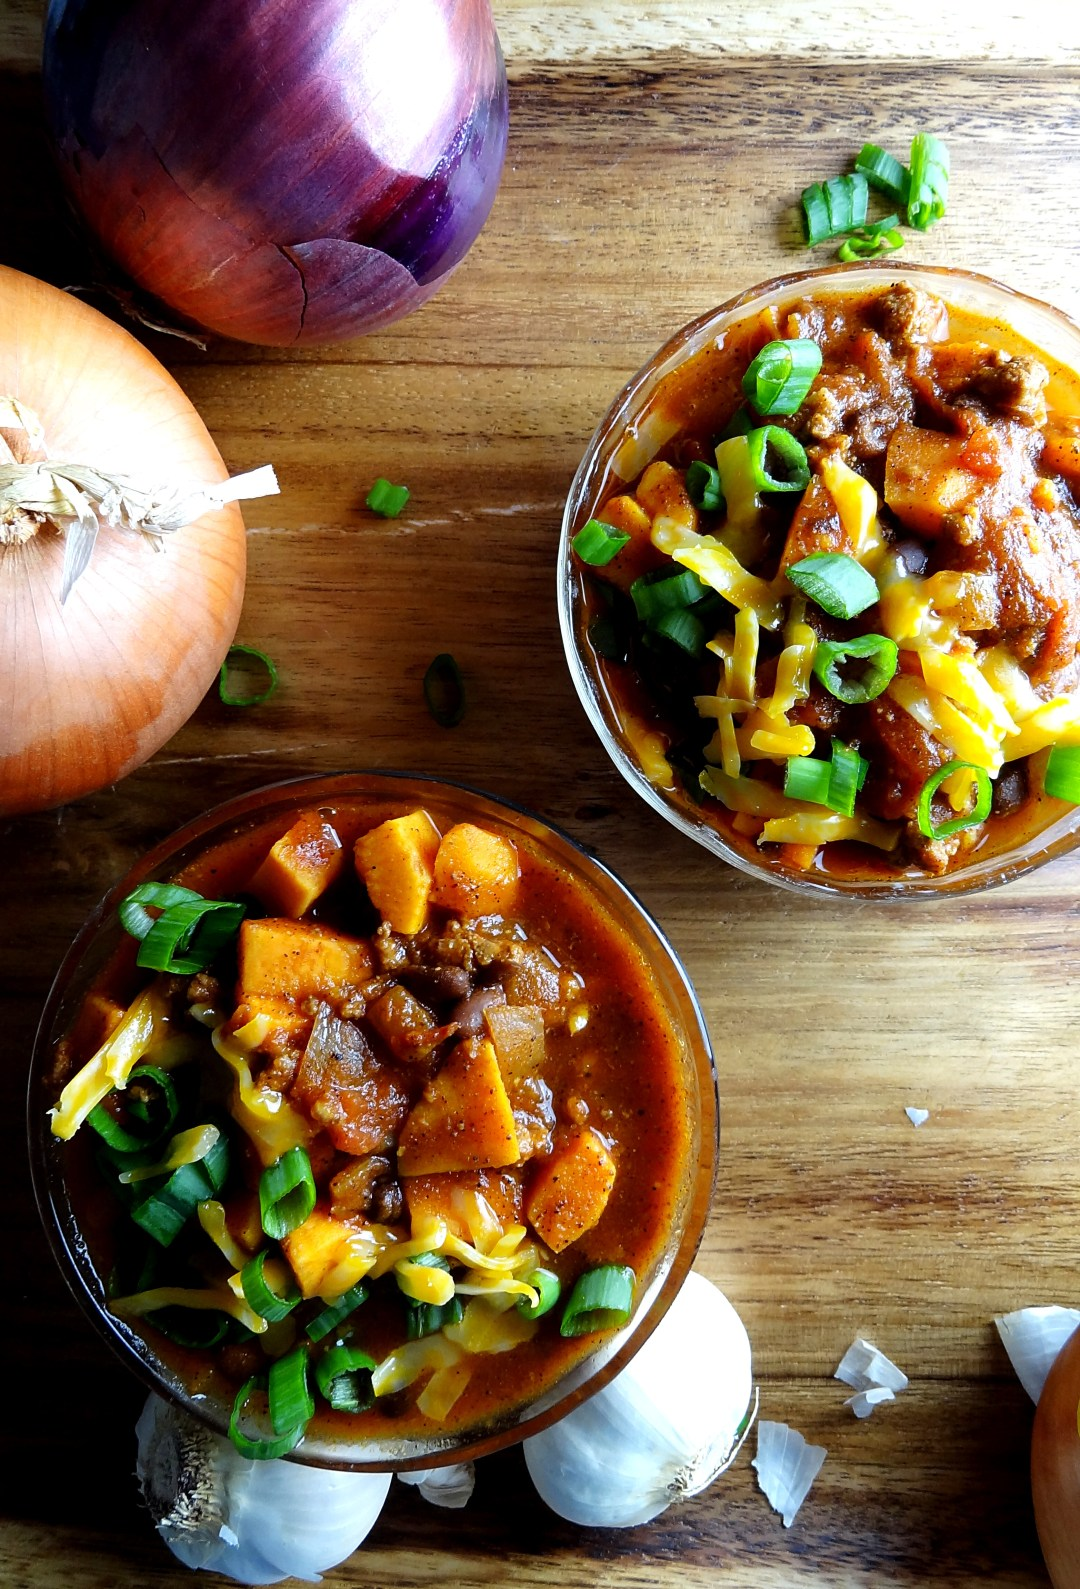 Slow Cooker Chili with Sweet Potatoes & Ground Beef is smoky and delicious. An easy weeknight dinner idea! Get the recipe from The Cheerful Kitchen